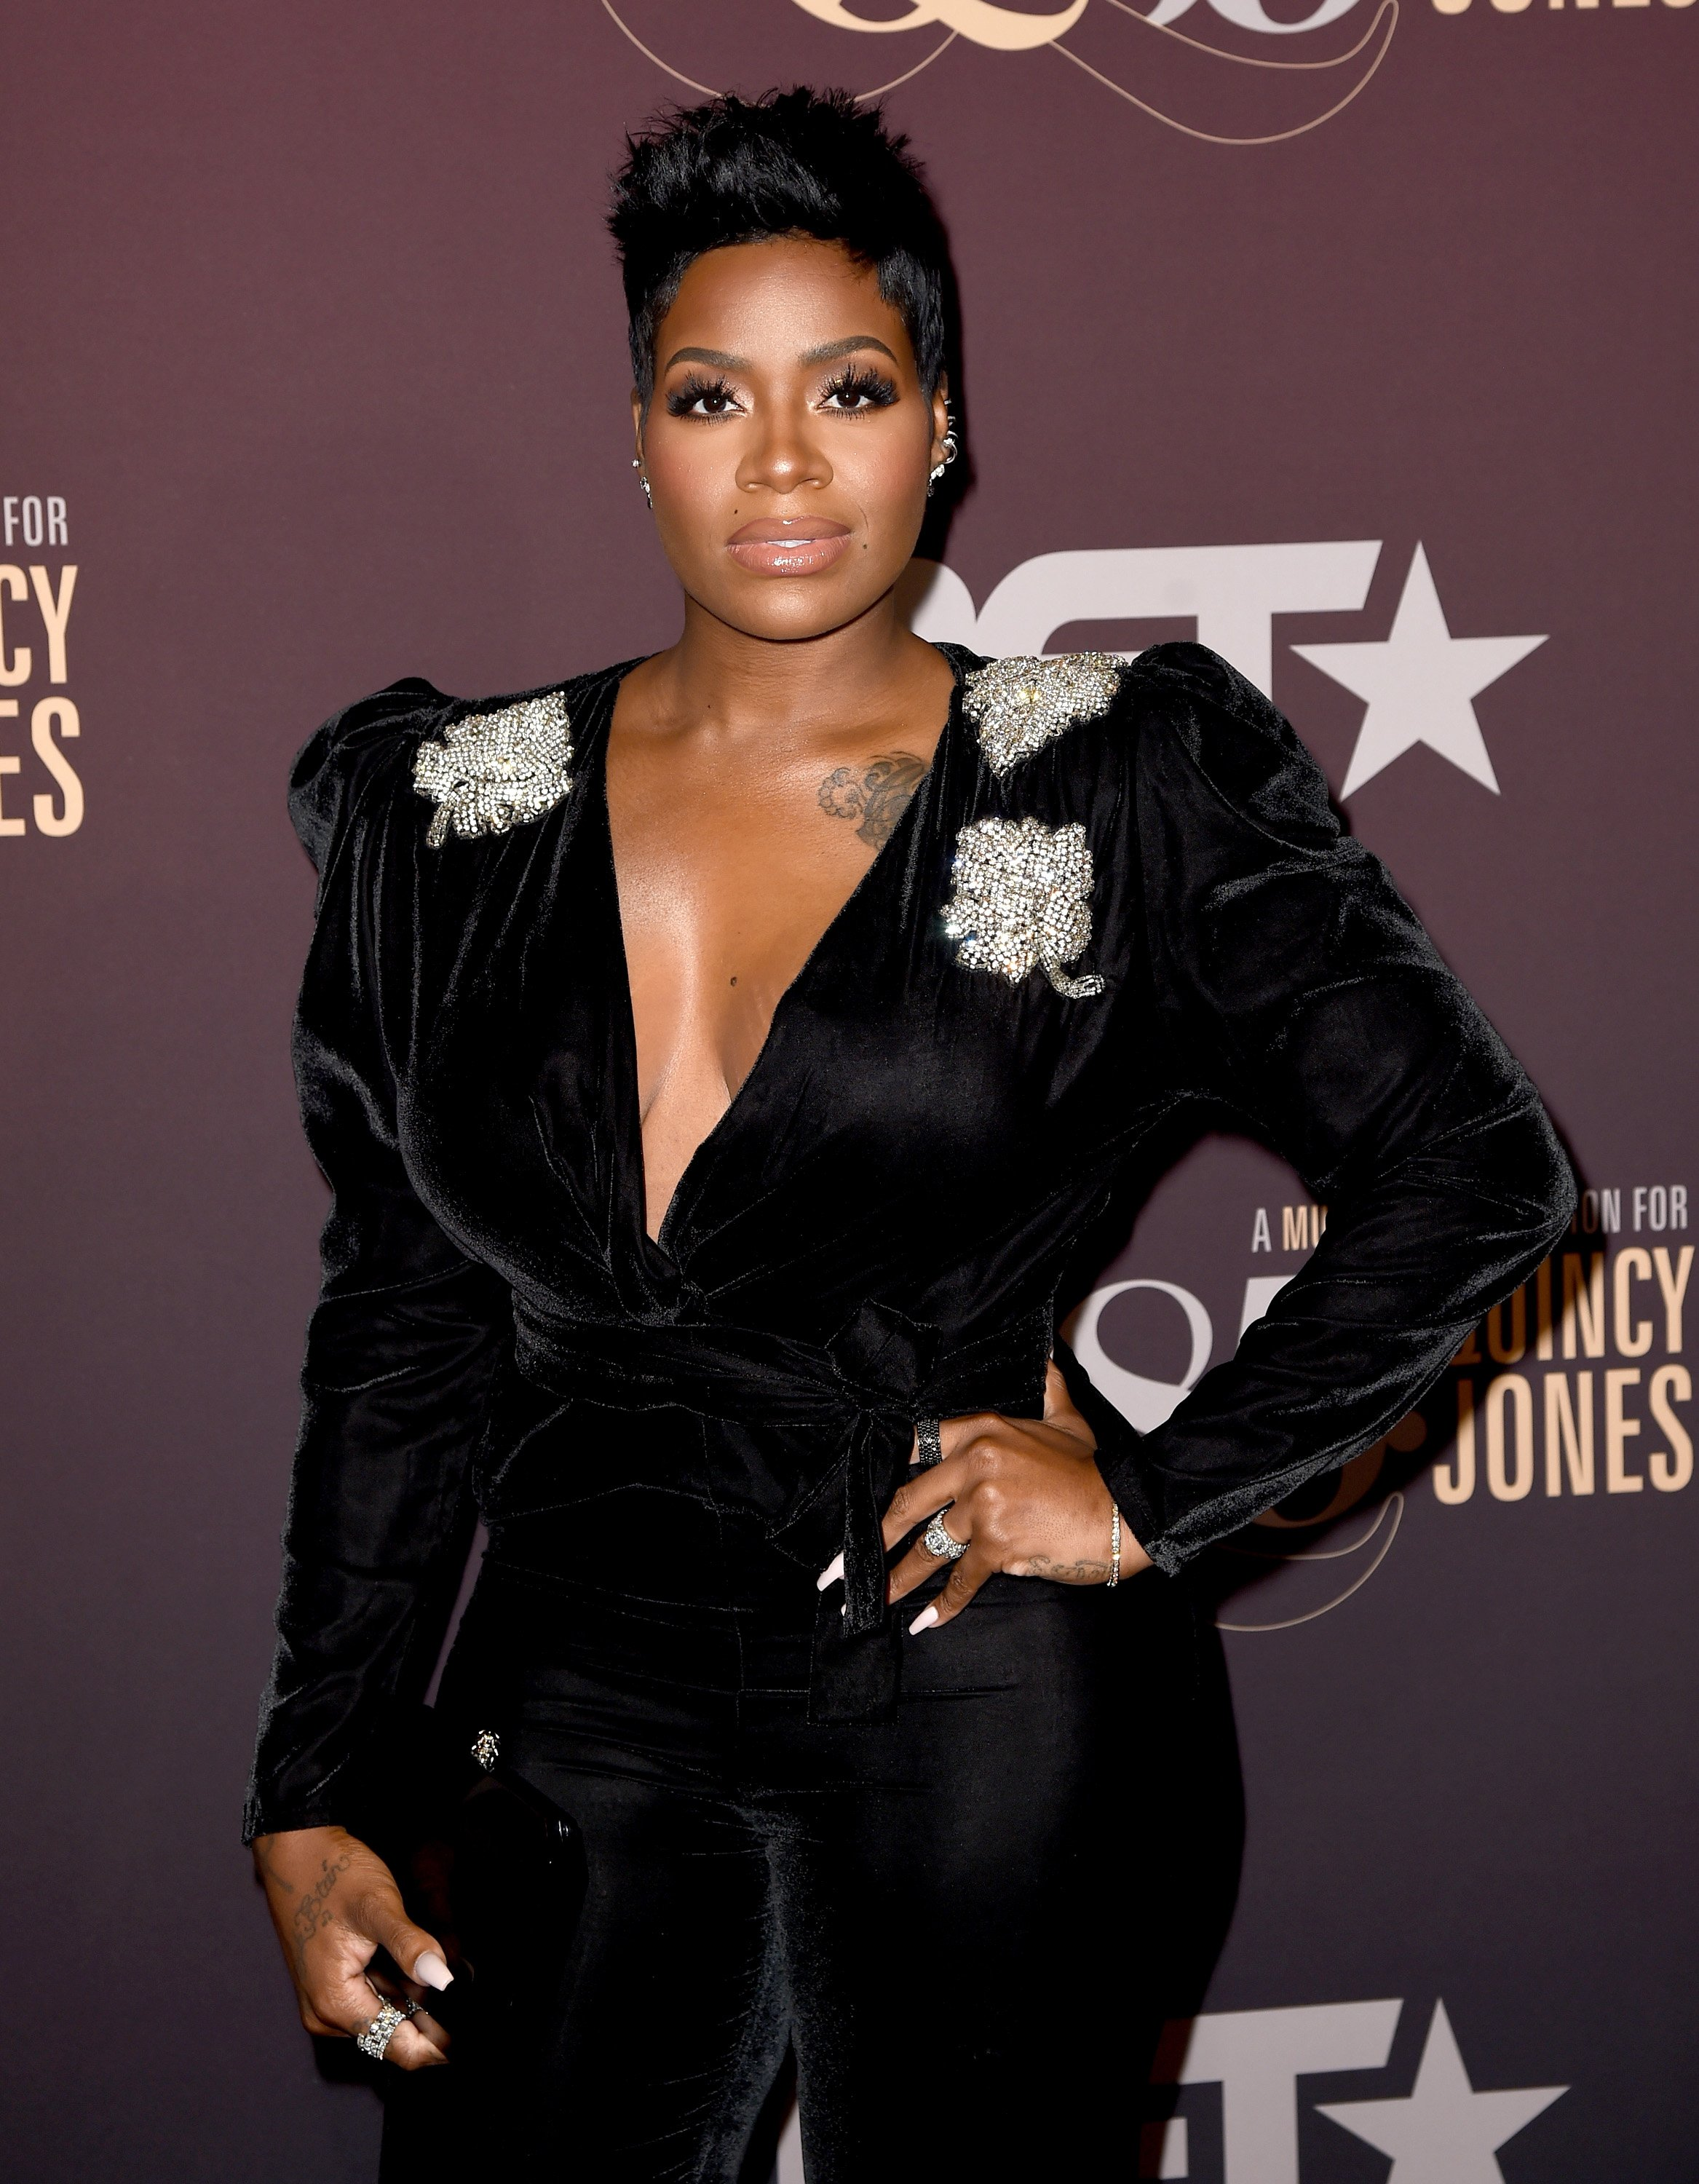 Fantasia Barrino at Q85: A Musical Celebration for Quincy Jones on September 25, 2018 in Los Angeles, California. | Source: Getty Images